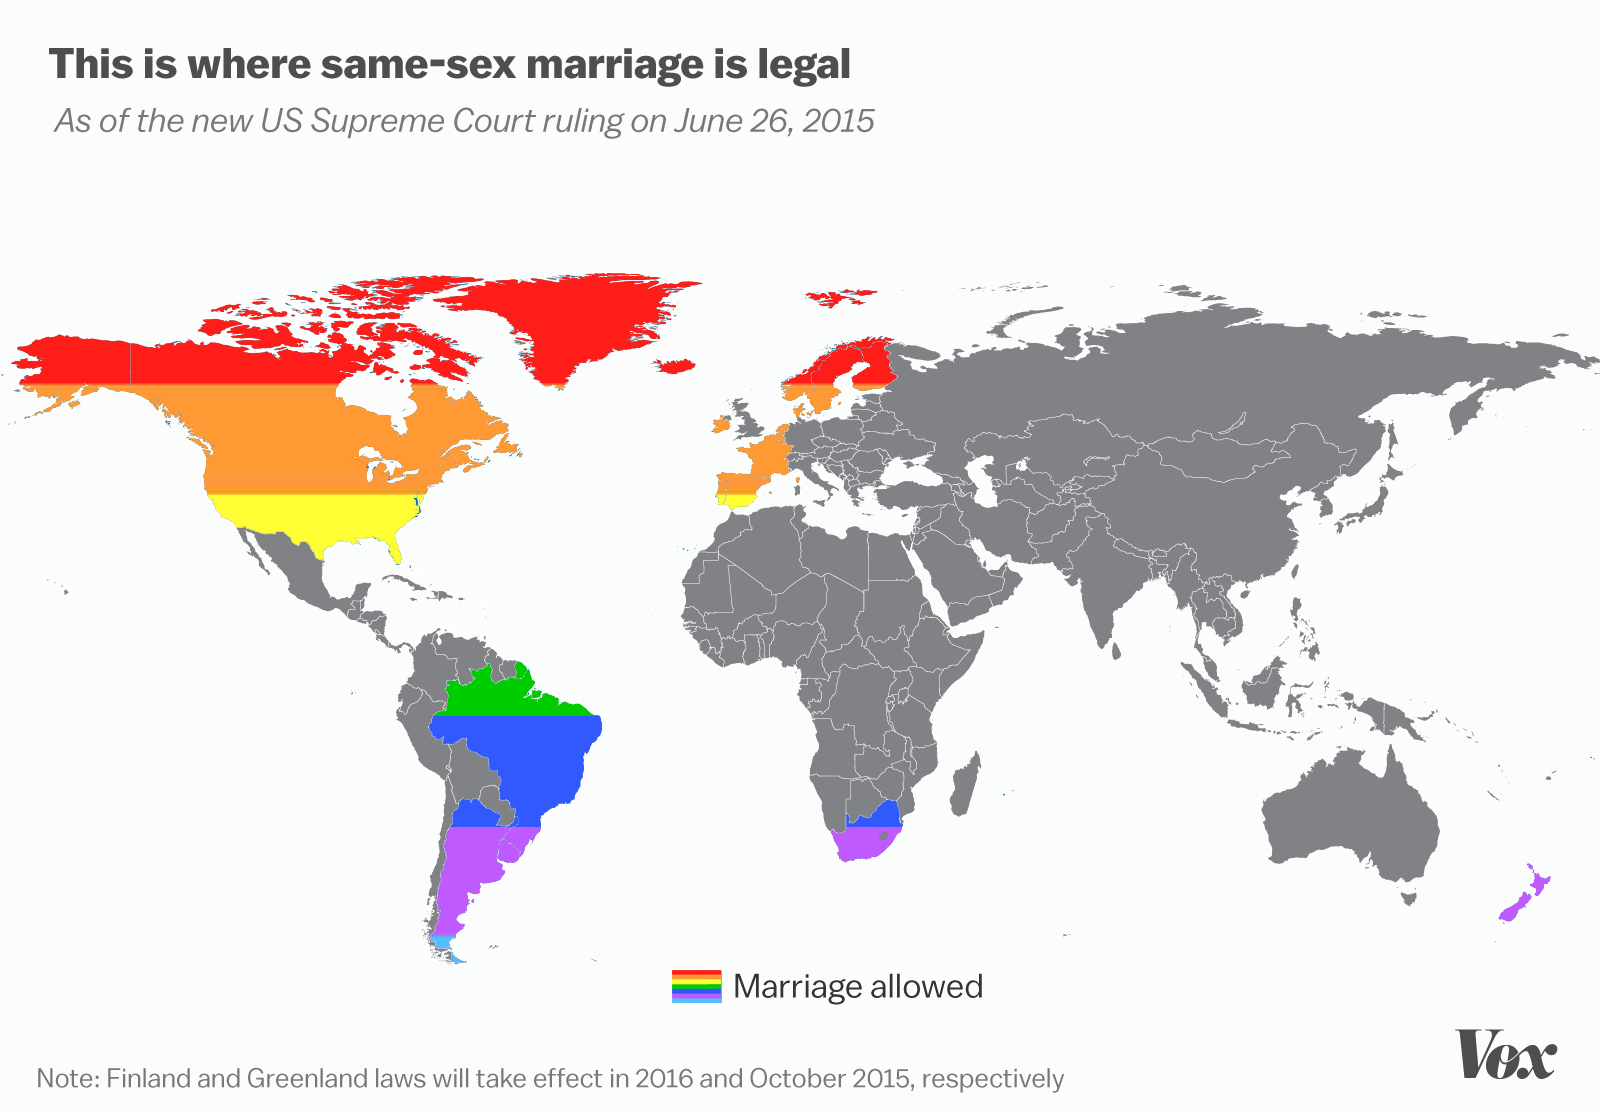 Why does every country not legalize gay marriage